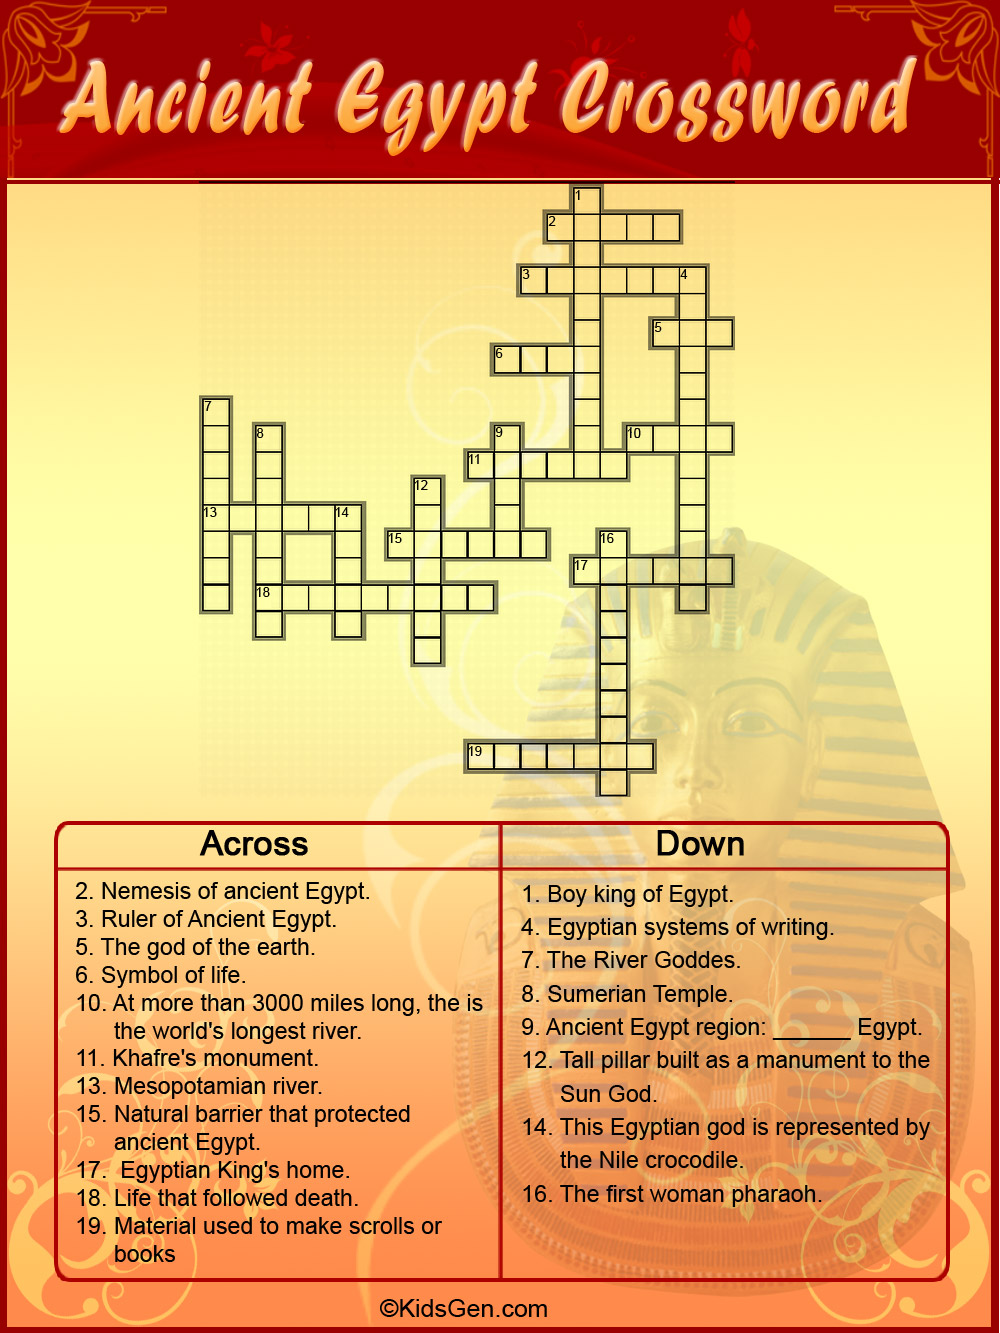 Ancient Egypt Colored Crossword Template